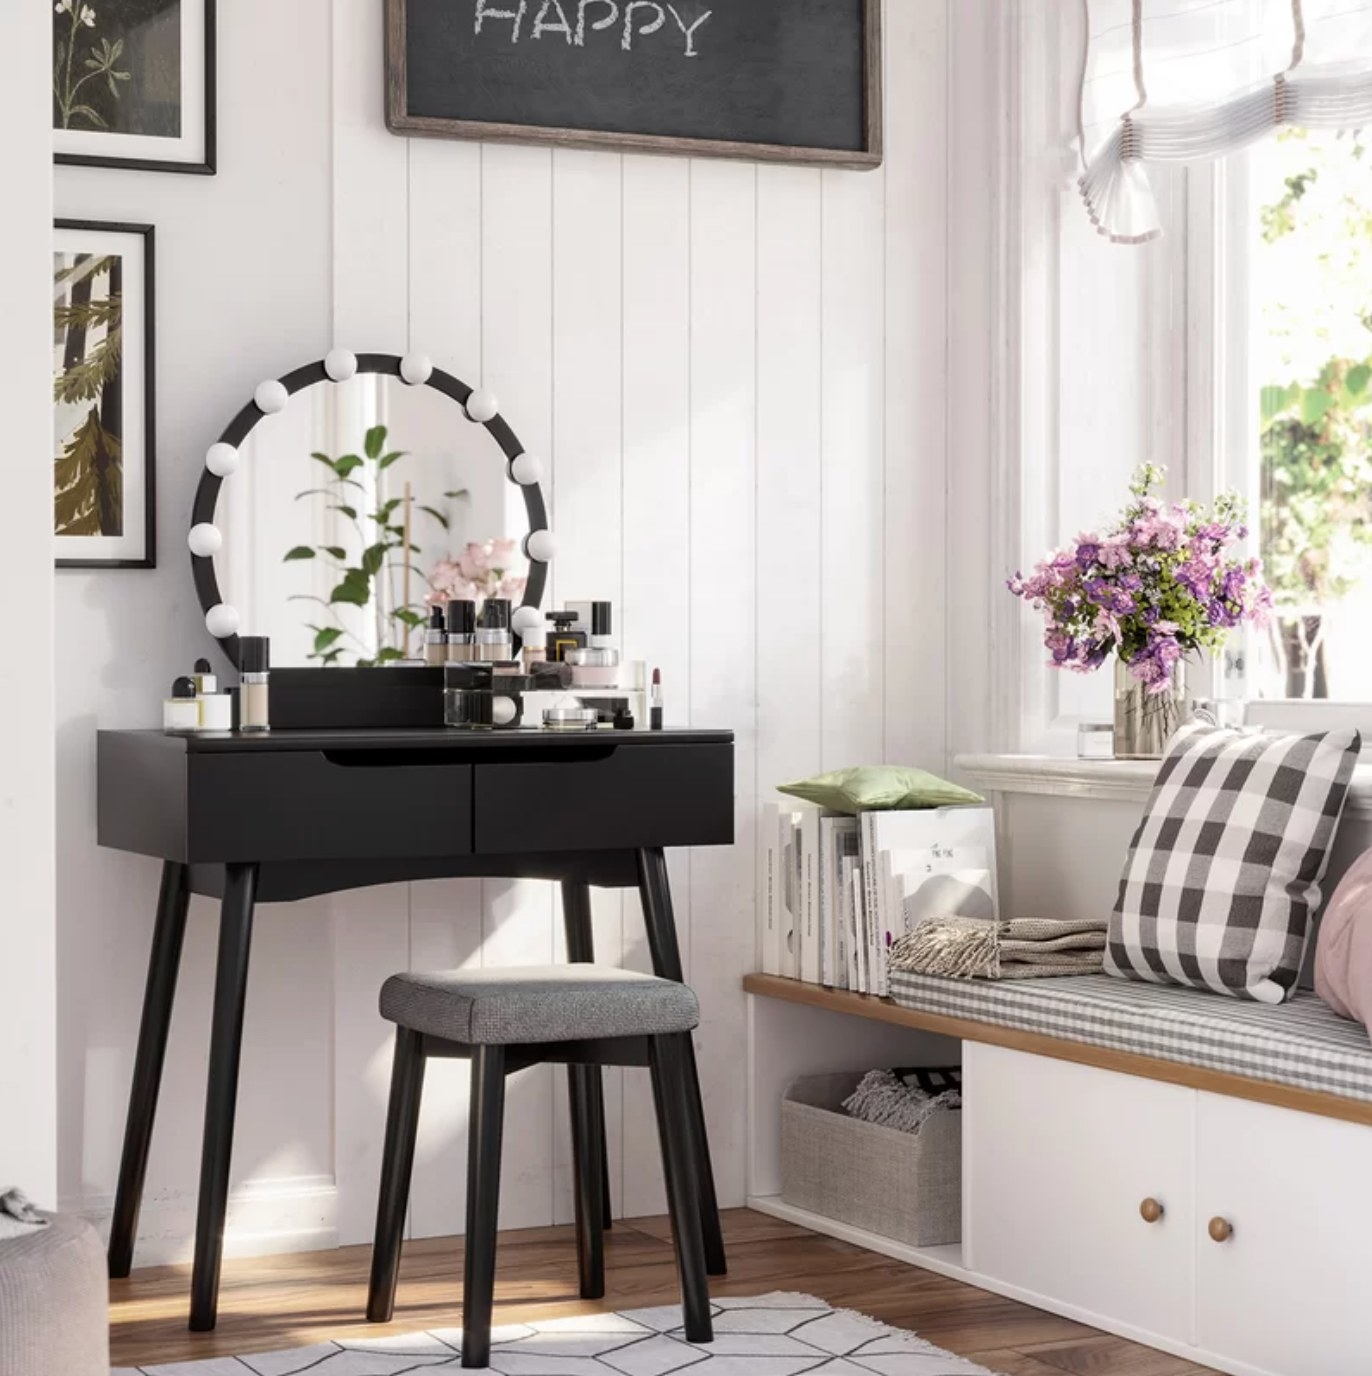 The vanity set with a stool and mirror in black with a gray seat